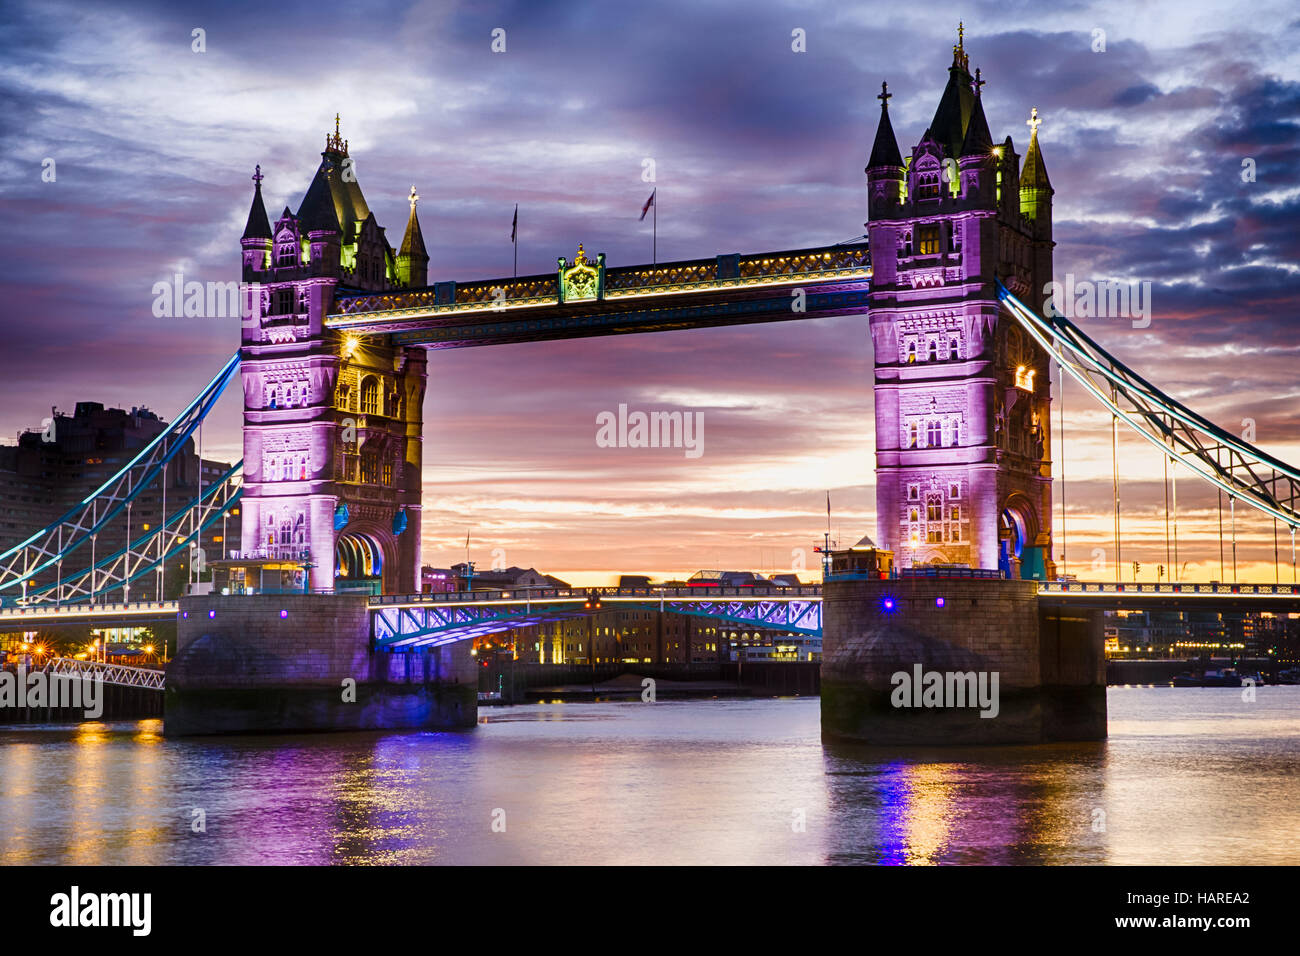 Tower Bridge, London, England, Tuesday, September 27, 2016.Photo: David Rowland / One-Image.com - Stock Image